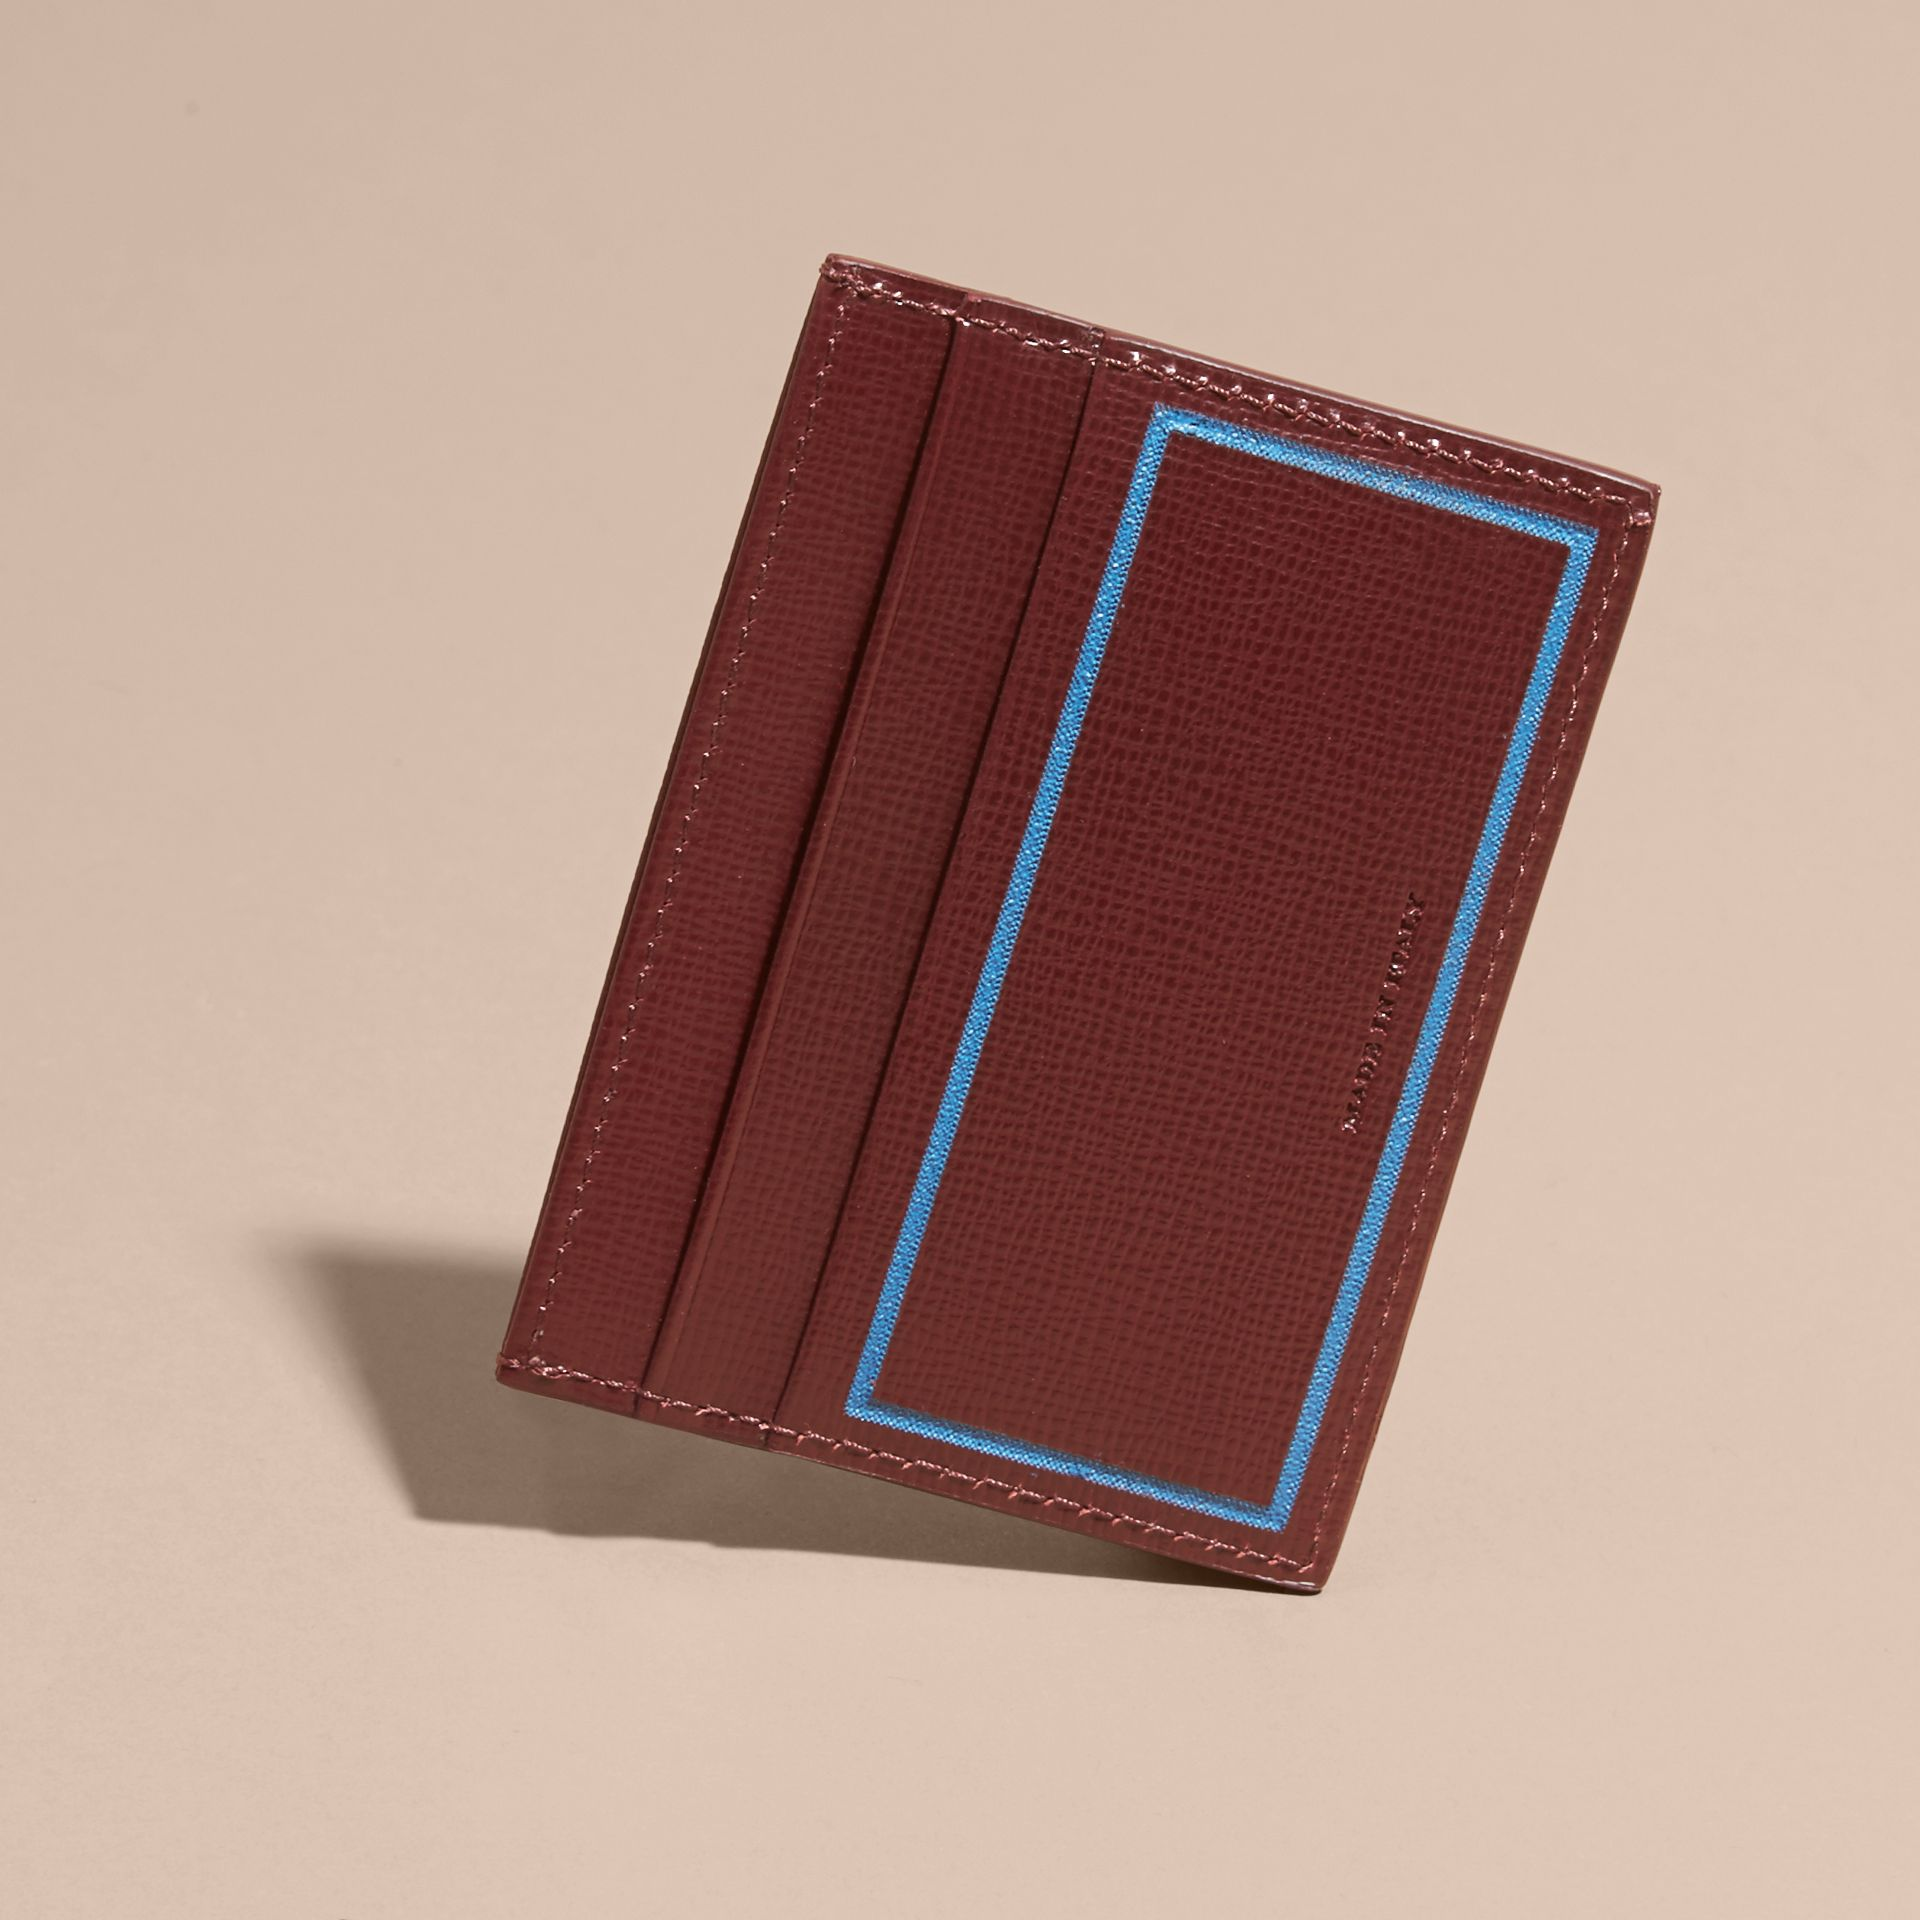 Border Detail London Leather Card Case Burgundy Red - gallery image 3